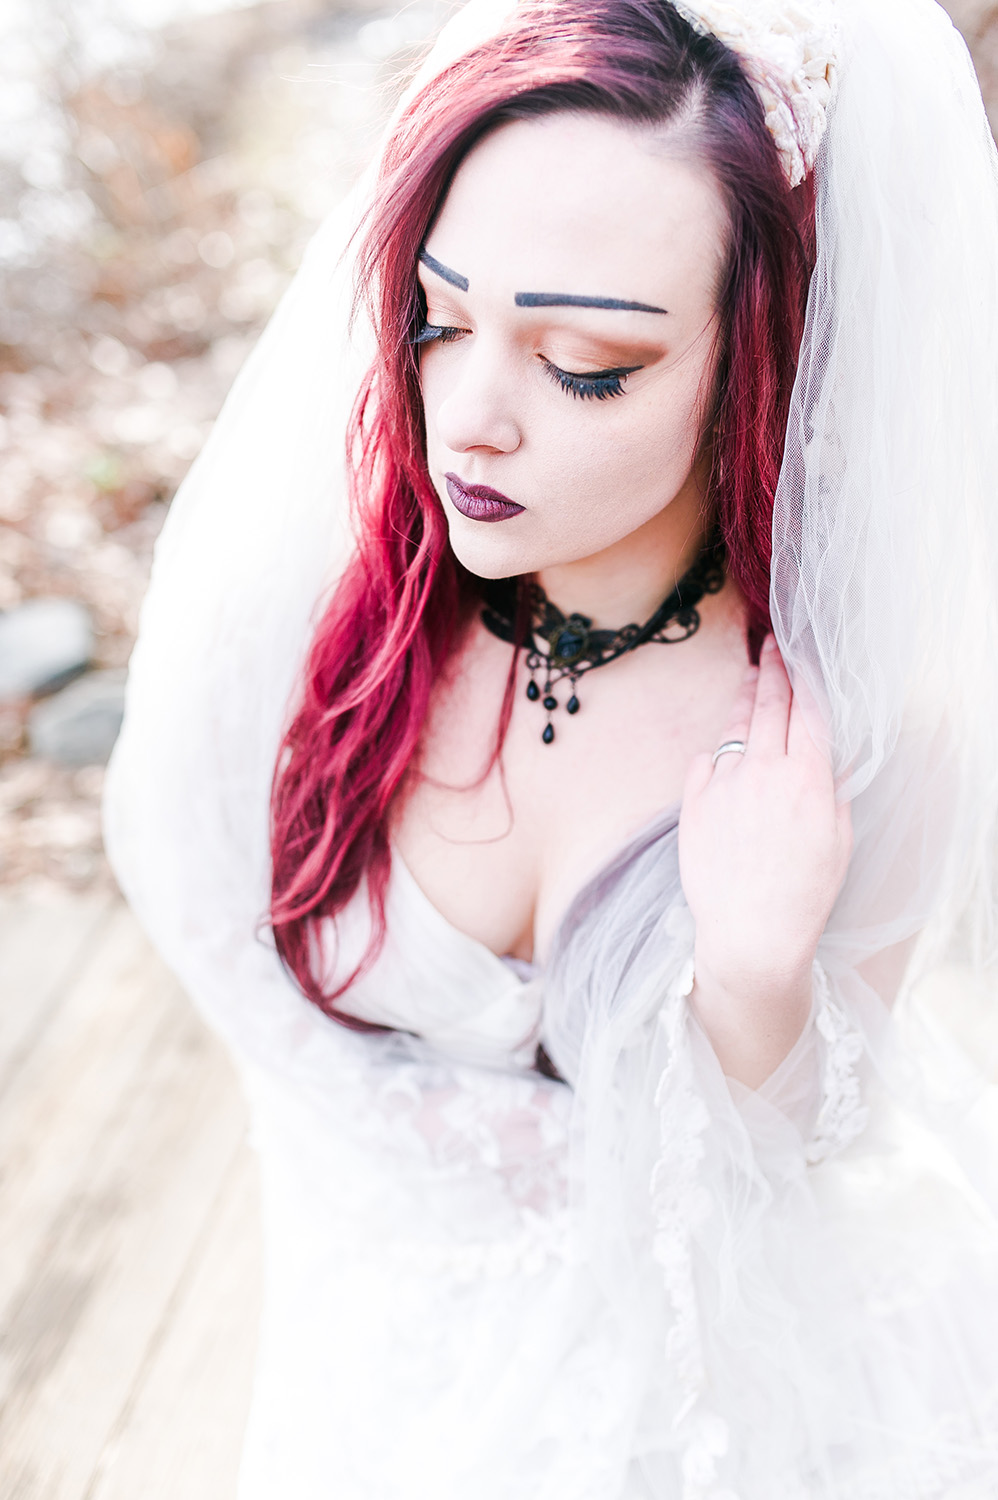 goth-pinup-suicide-girl-maryland-NJ-MD-01.jpg